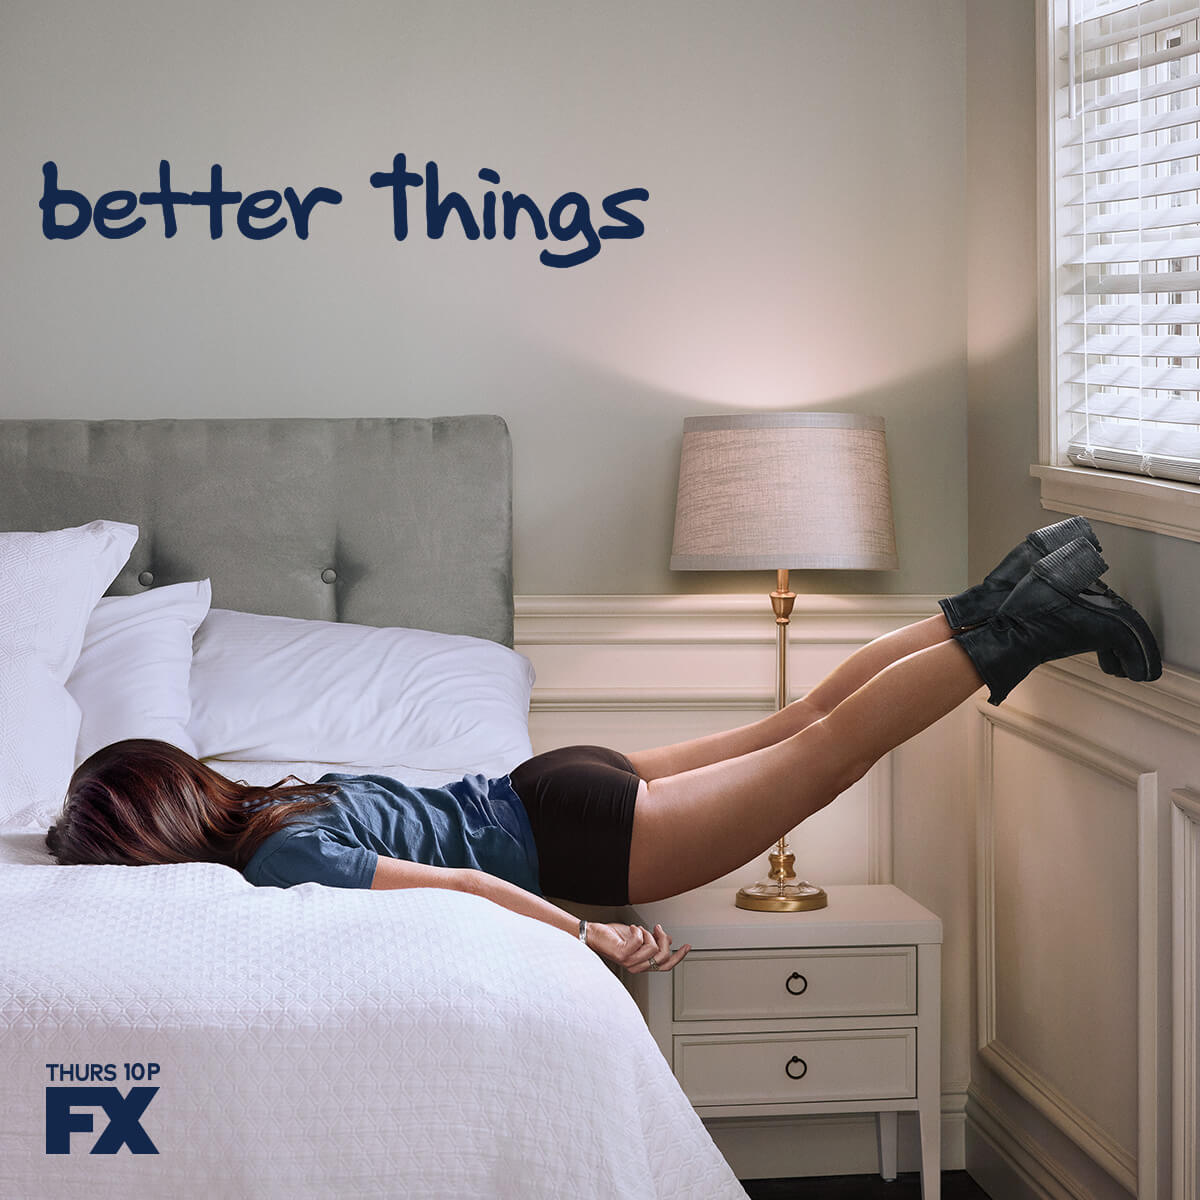 Fall TV is Back + Better Things Giveaway